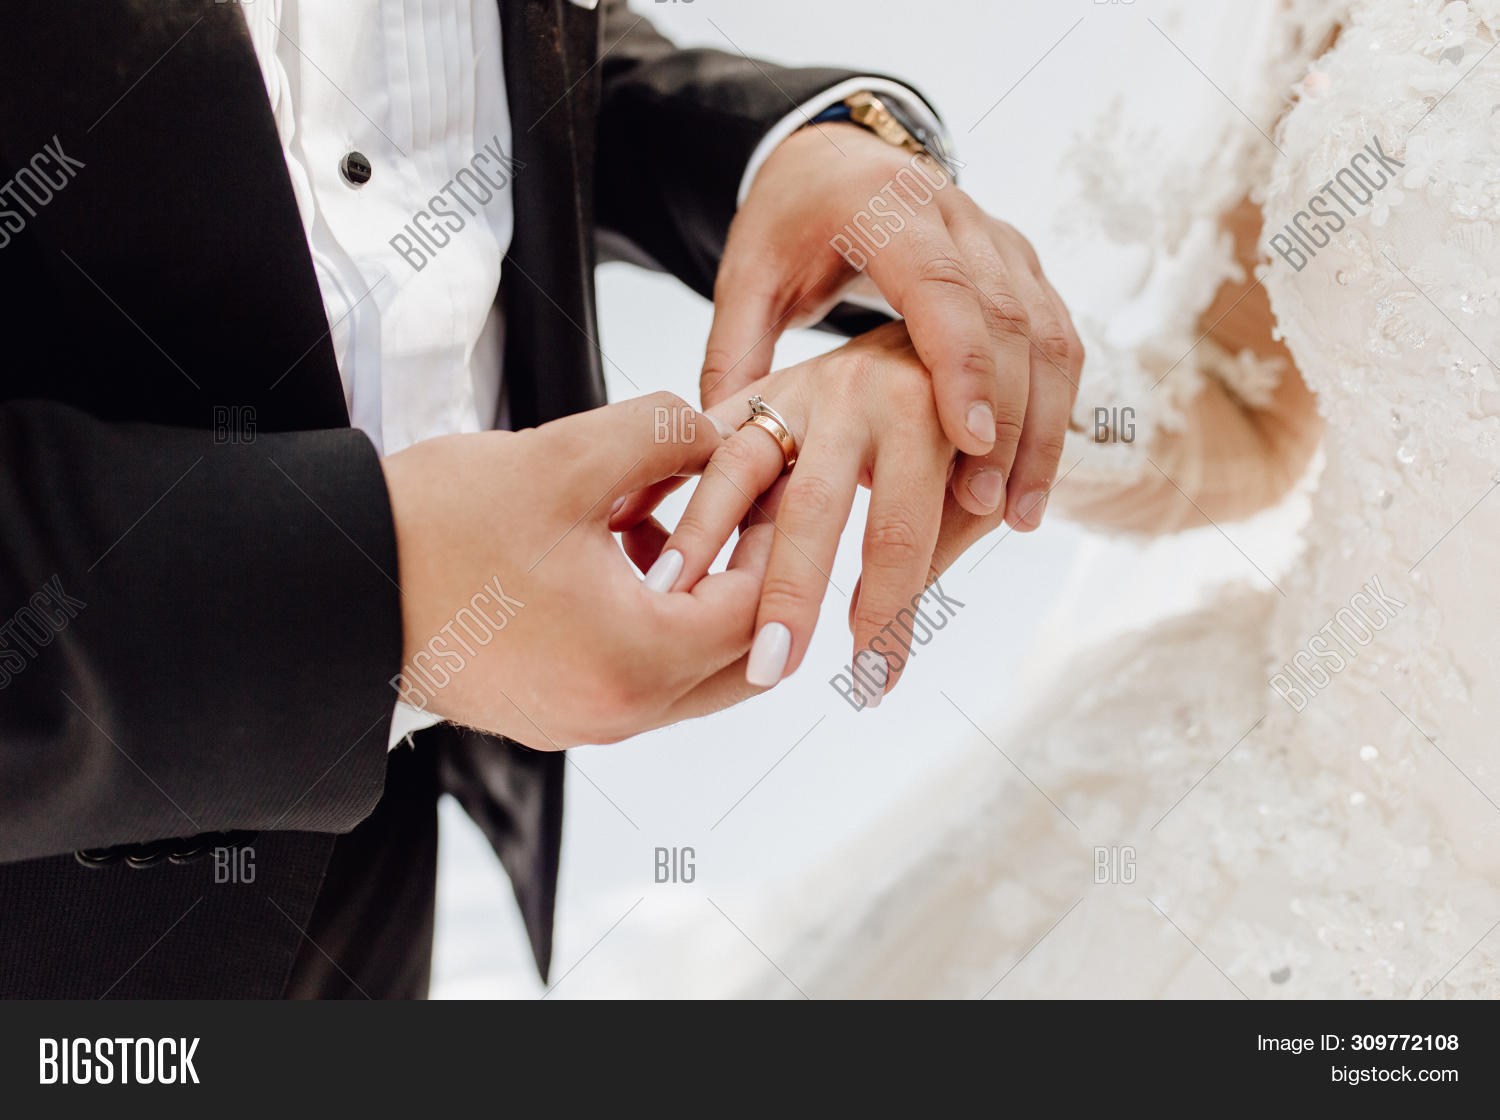 accessory,adult,art,beautiful,black,boy,bridal,bride,brilliant,carat,caucasian,celebration,ceremony,close,commitment,couple,diamond,dress,engagement,family,fashion,female,fine,finger,girl,golden,groom,hand,happy,hold,holding,jewelry,joined,joy,love,luxury,male,man,marriage,person,promise,purity,putting,ring,rustic,suit,up,wedding,white,woman